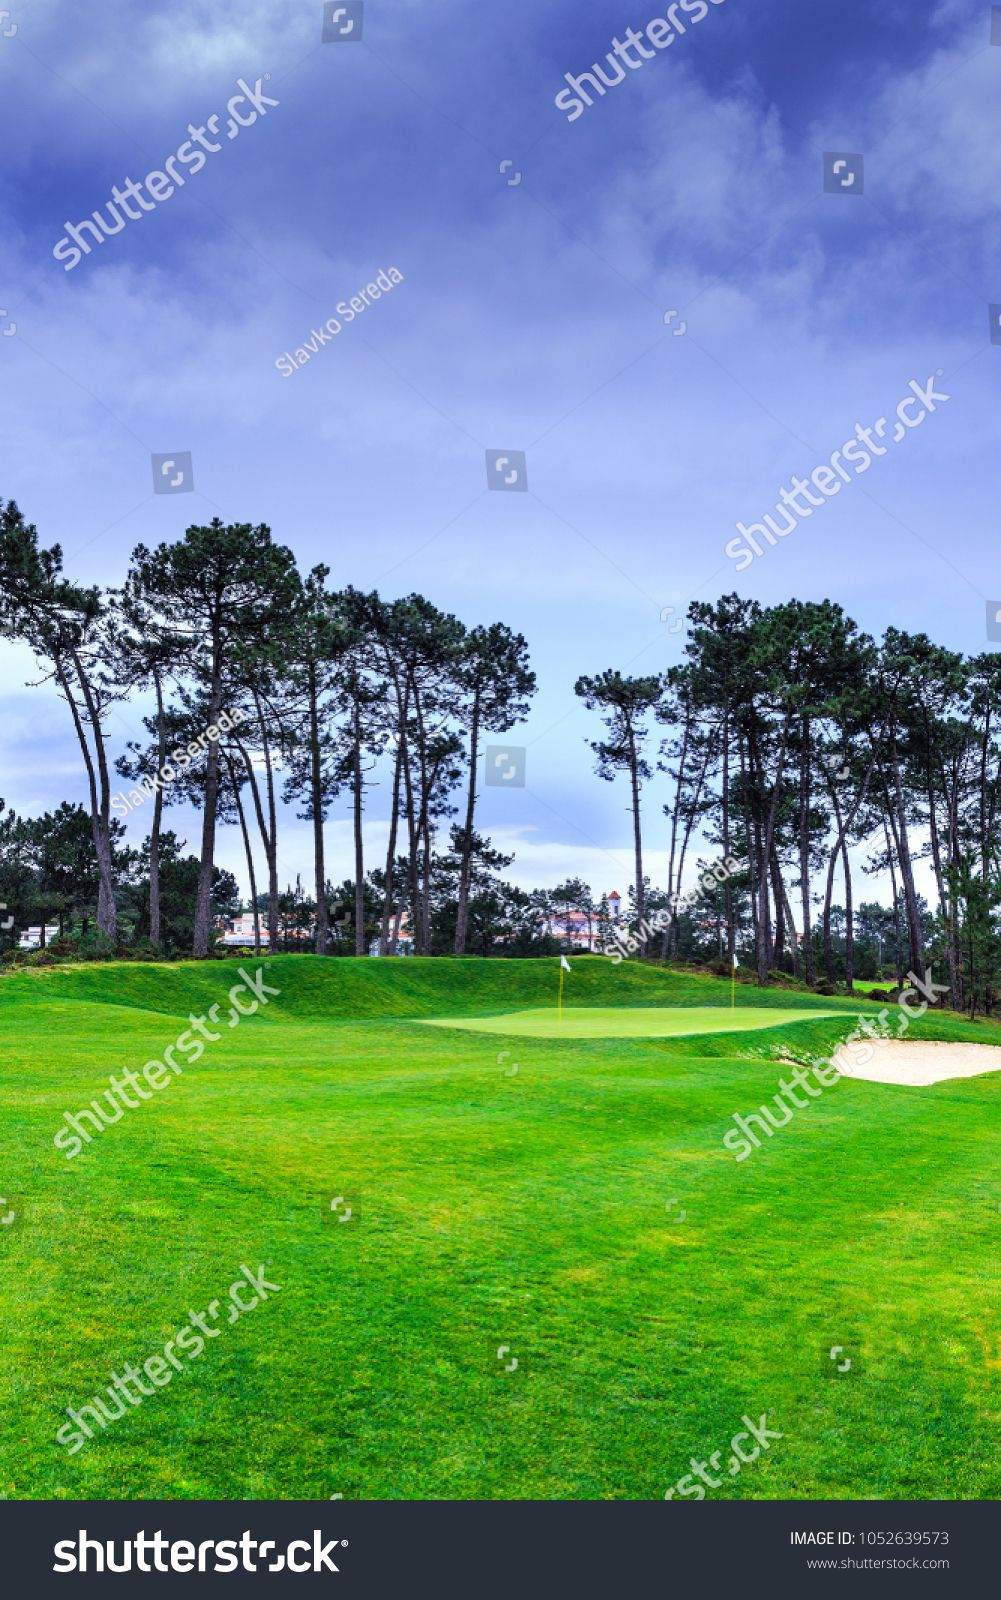 A Fragment Golf Course With Flagsticks At Holes In The Pine Forest Ad Affiliate Flagsticks Golf Fragment F In 2020 Golf Courses Swimmer Royalty Free Stock Photos